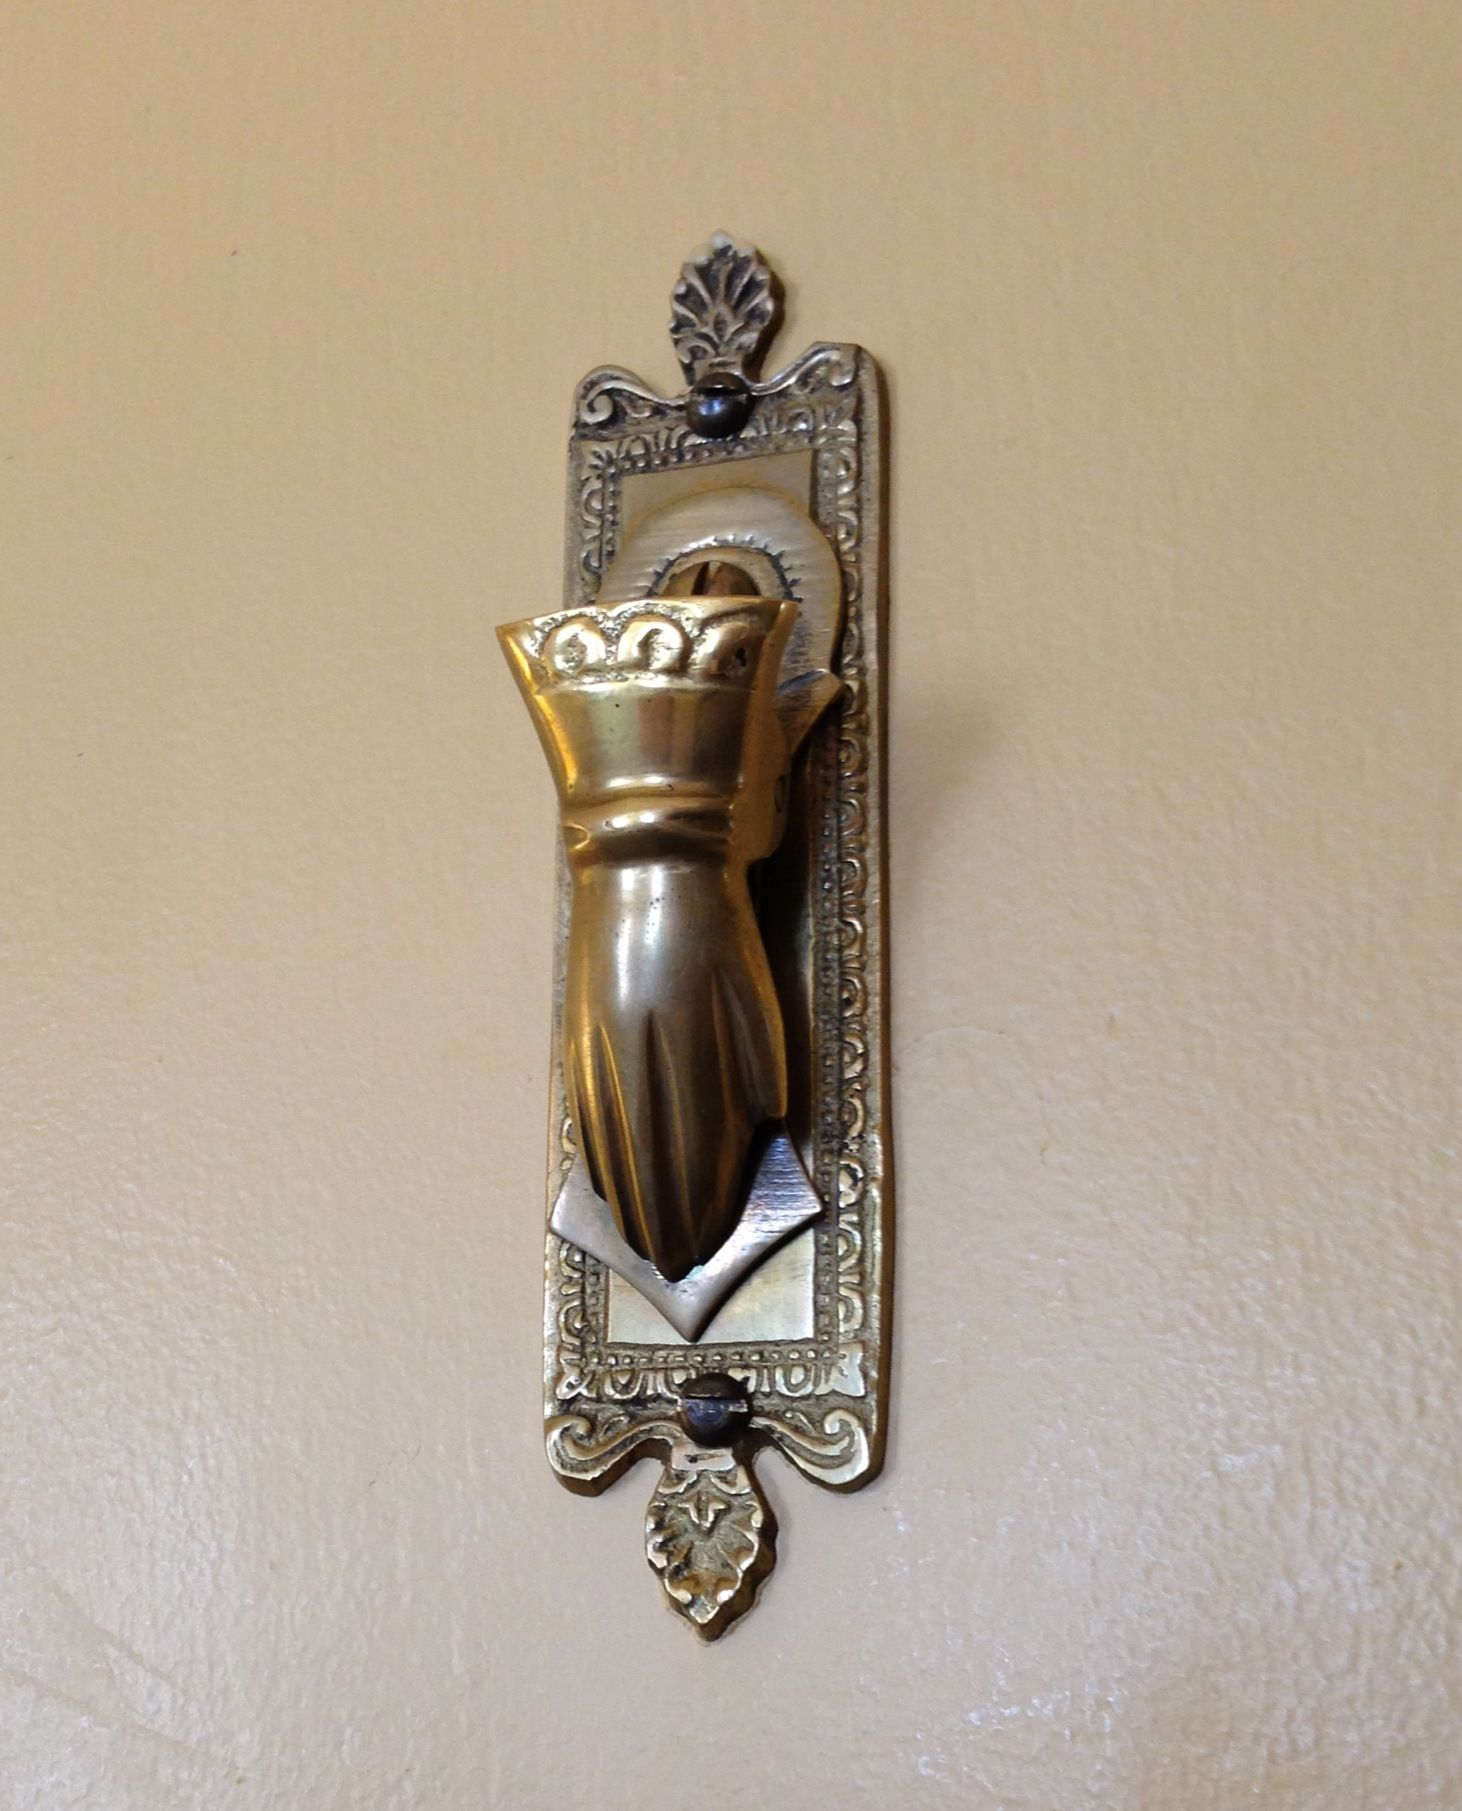 Art deco door knocker ashland springs hotel coolness pinterest